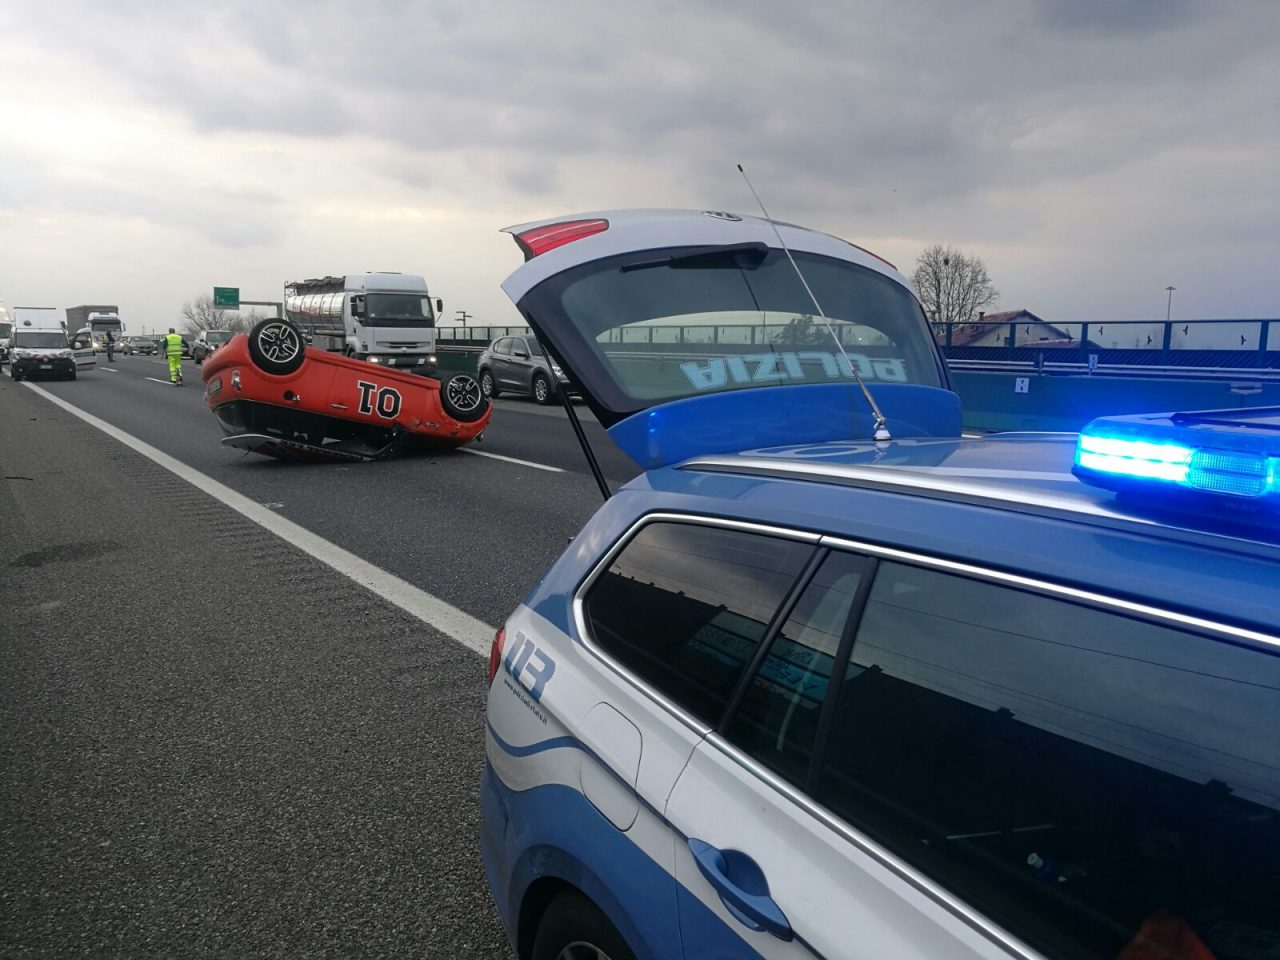 Incidente A4 autostrada riaperta al traffico